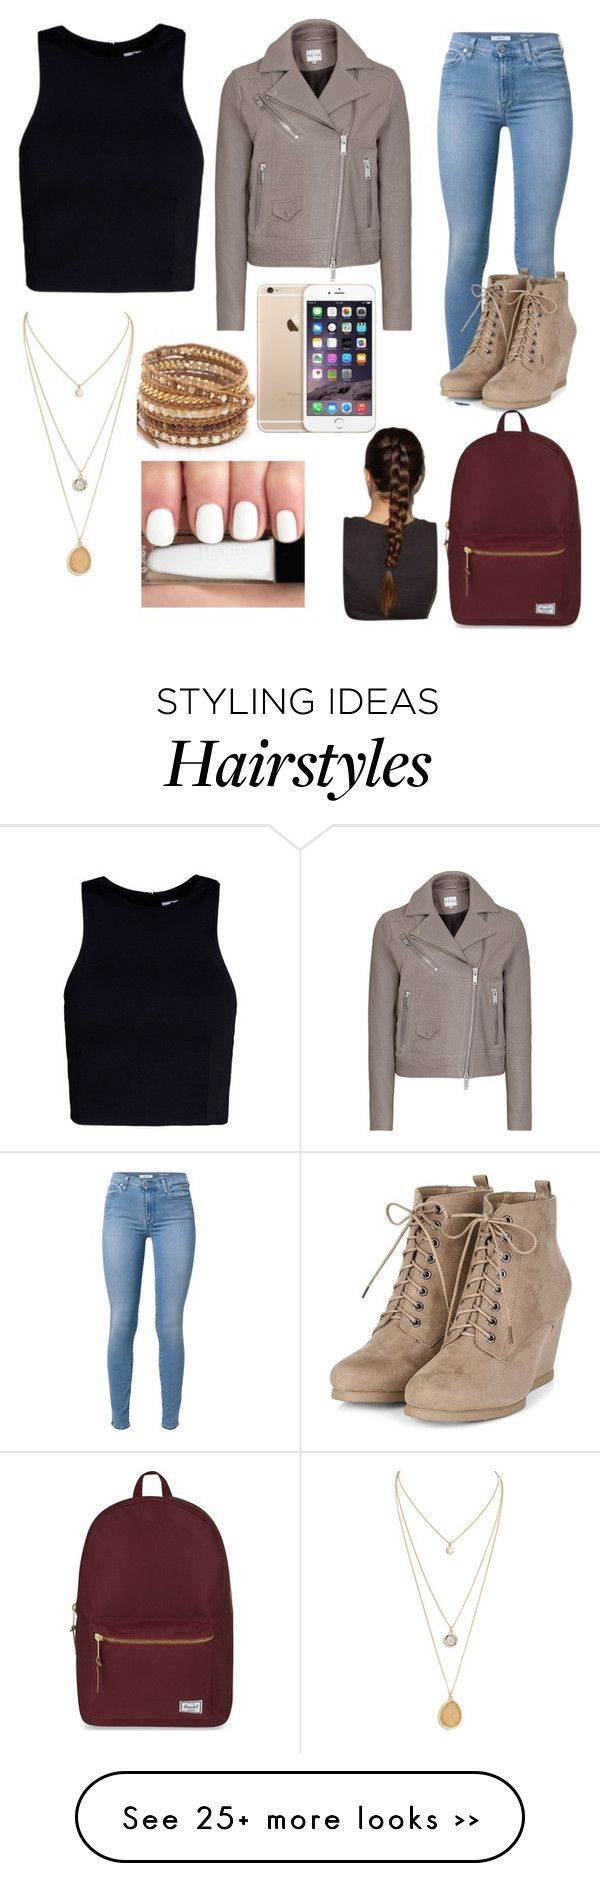 """Outfit inspiration"" by xela11 on Polyvore featuring T By Alexander Wang, 7 For All Mankind, Chan Luu and Herschel Supply Co."